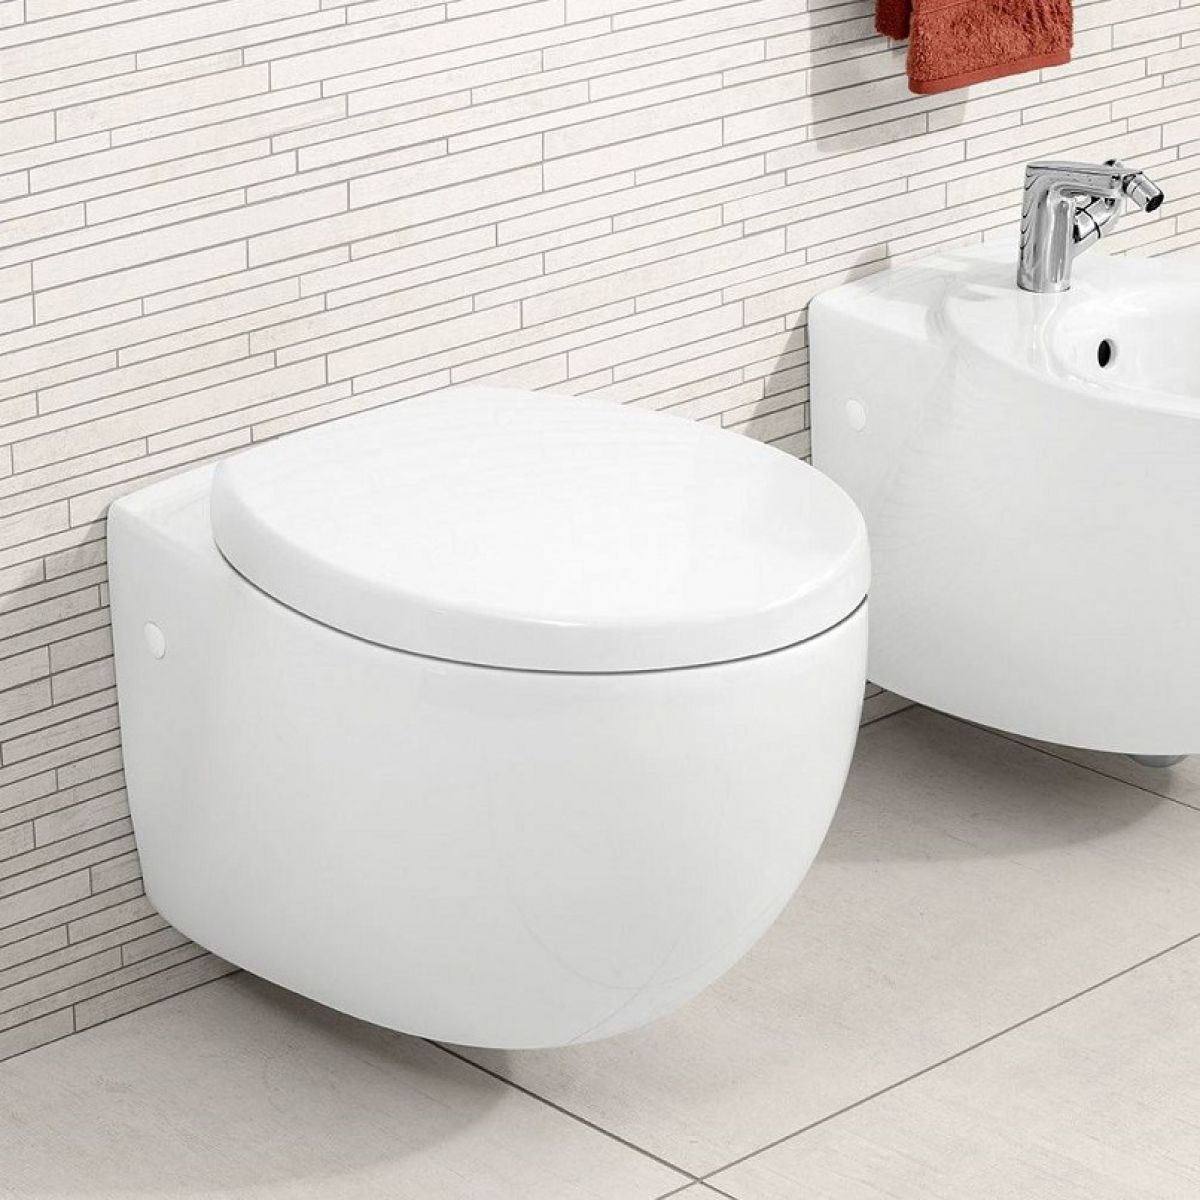 Villeroy & Boch Aveo New Generation Wall Hung Toilet